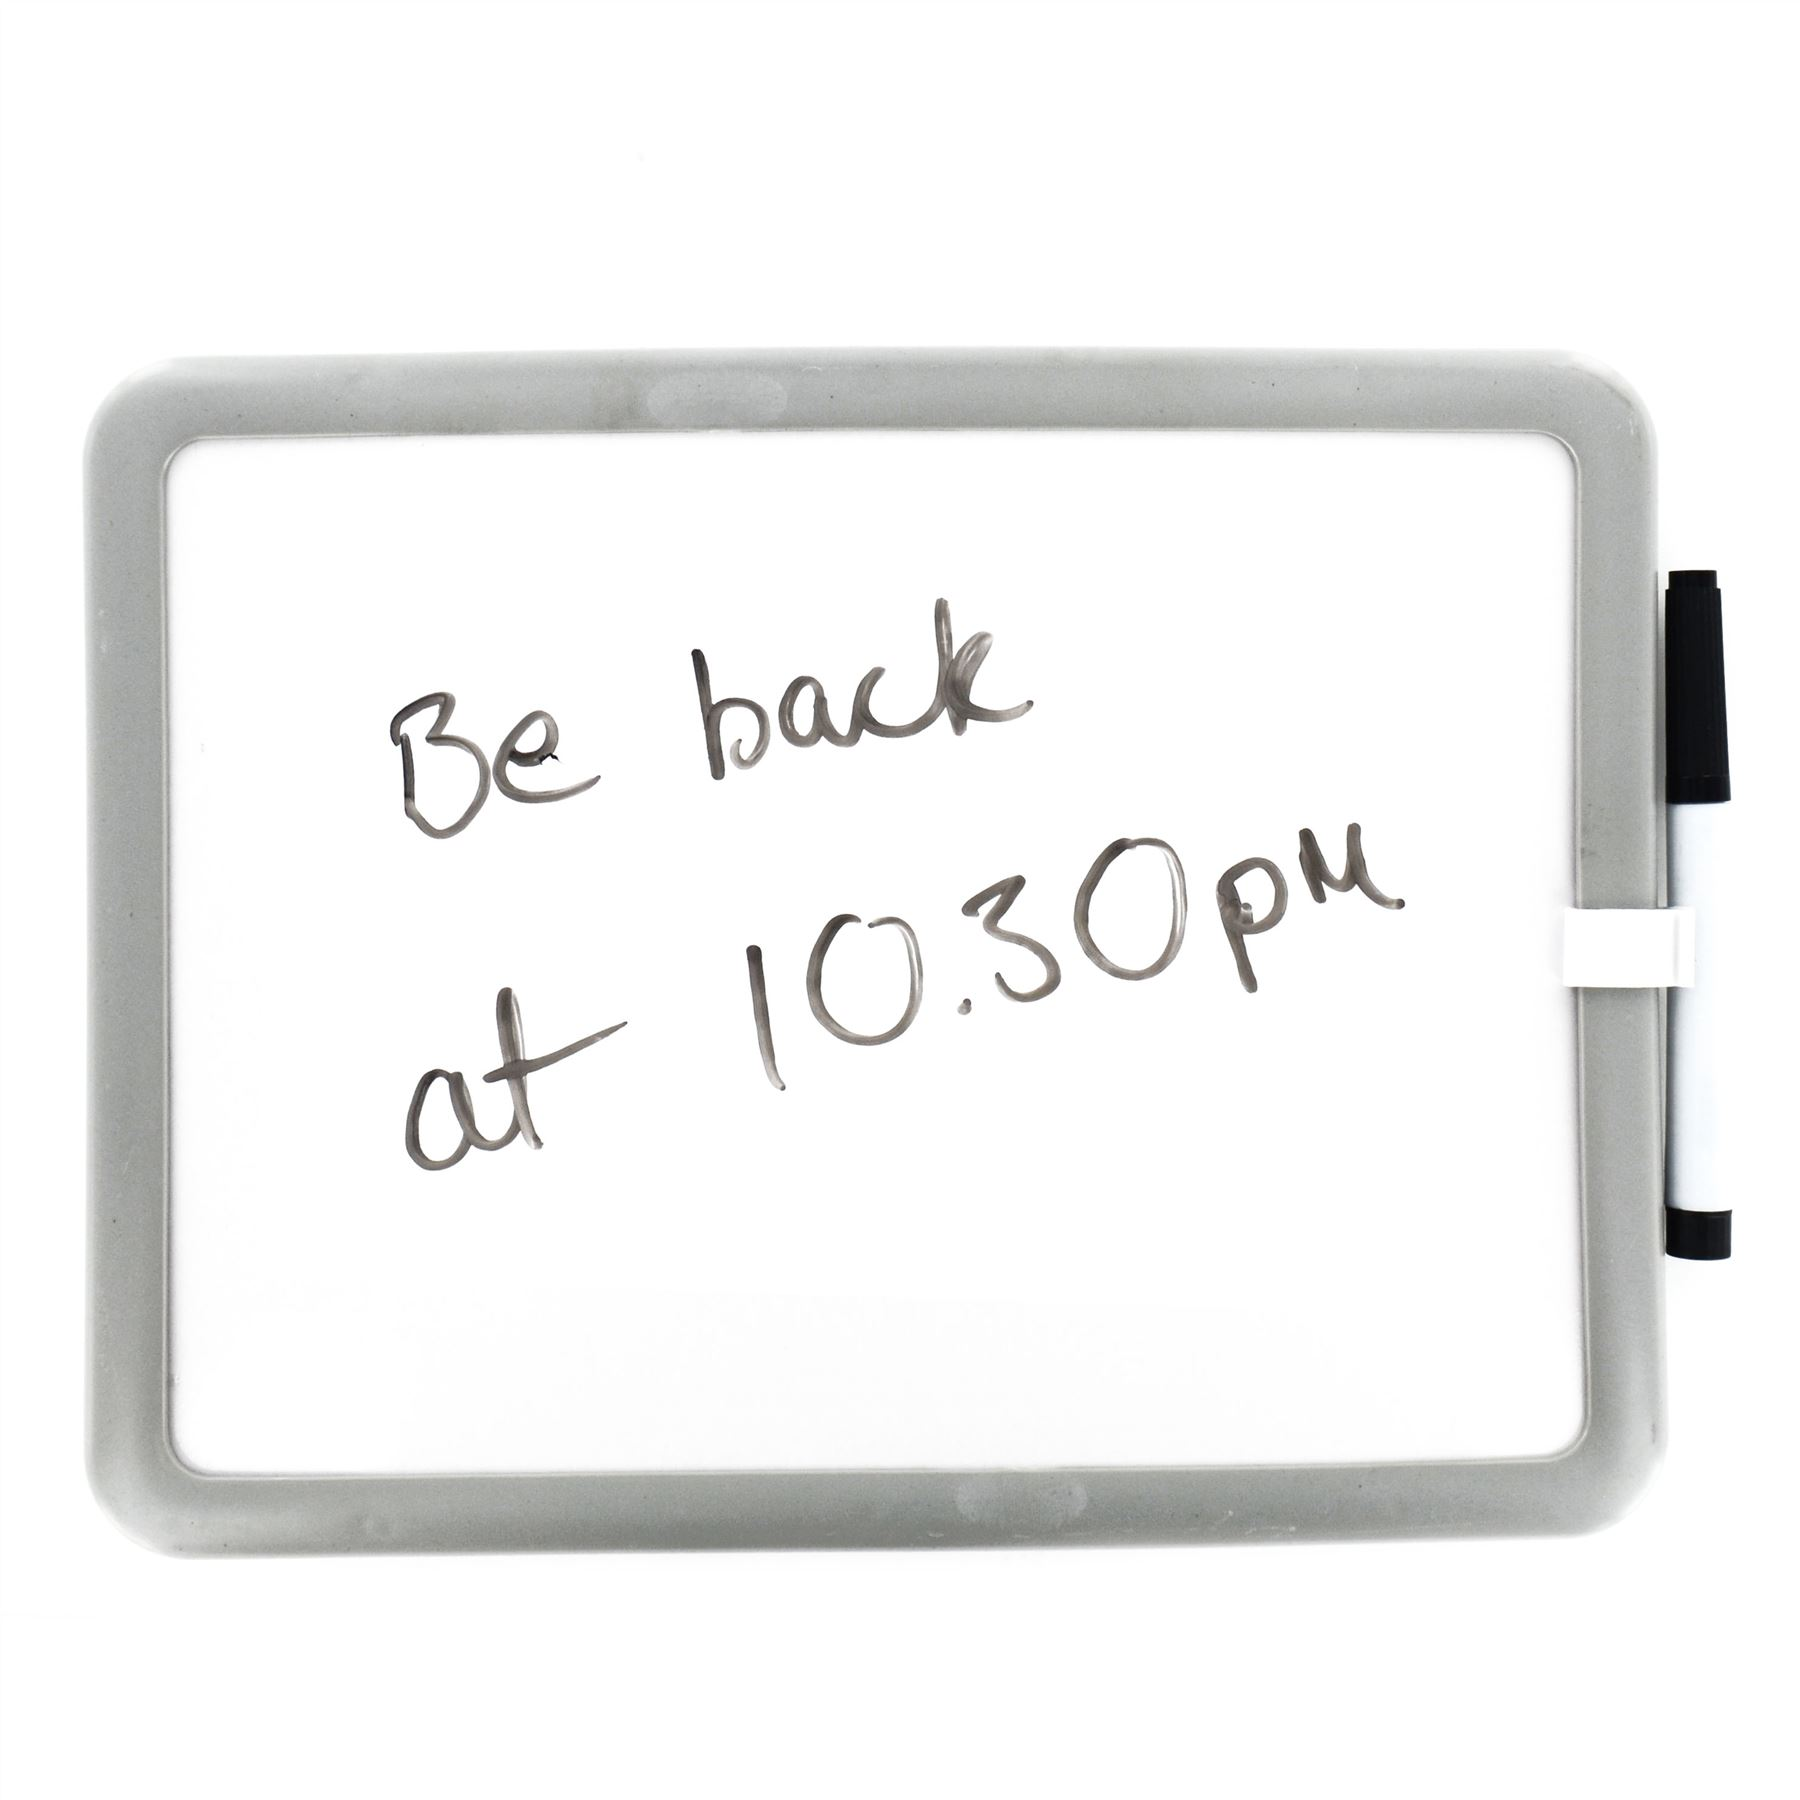 Small Magnetic Dry Wipe White Home Memo Notes Board Office Whiteboard Planner